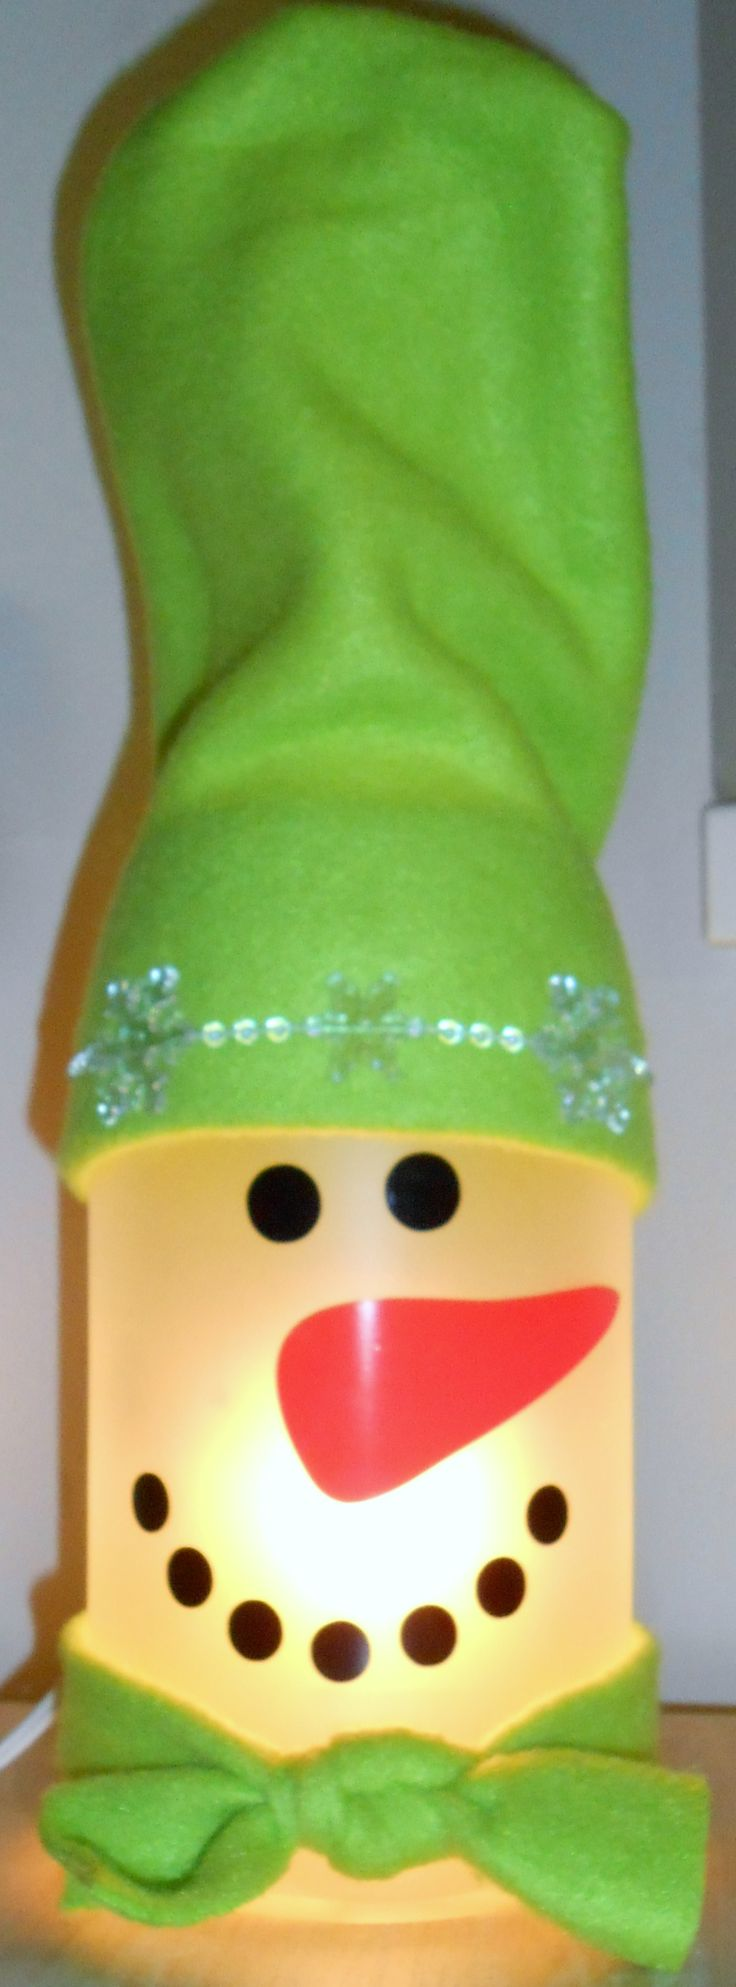 Bottle snow-person with fleece hat and scarf. Created by Karen Bennett